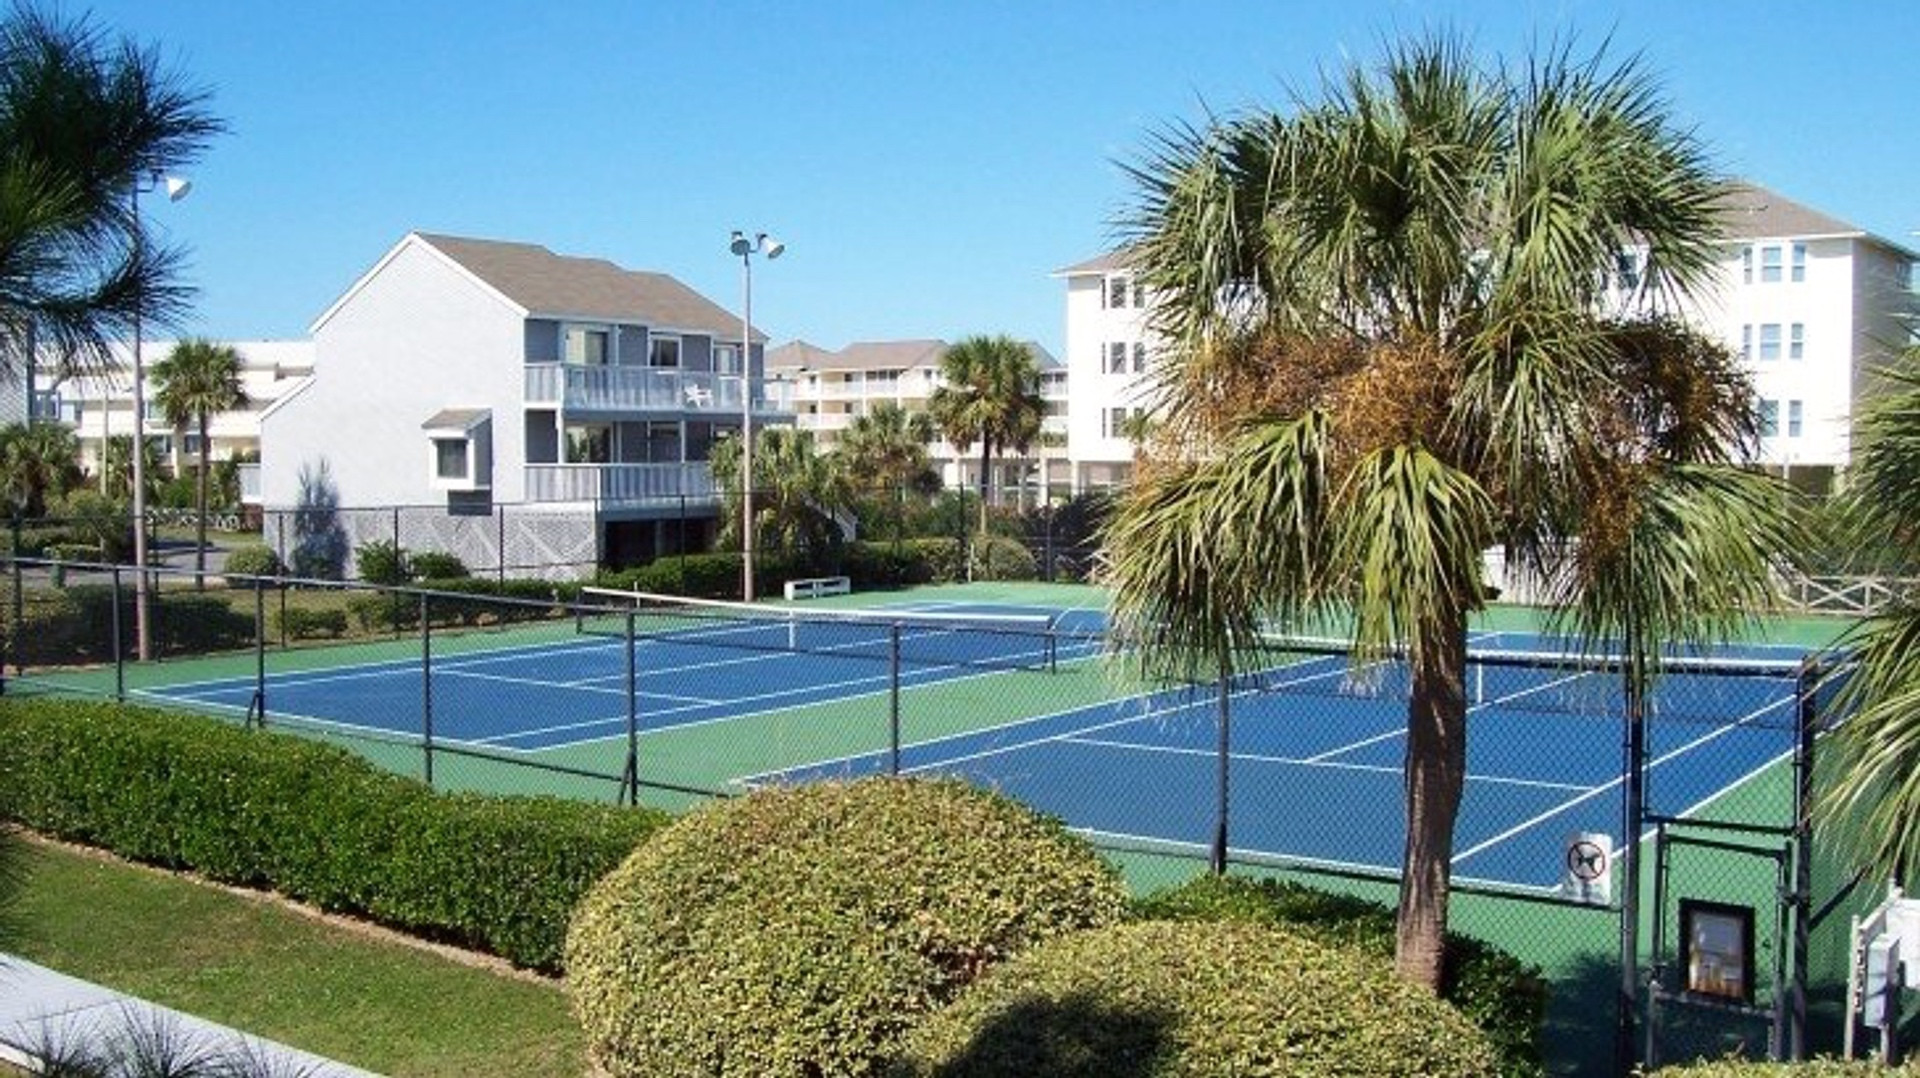 Tennis courts-FantaSea is middle unit on